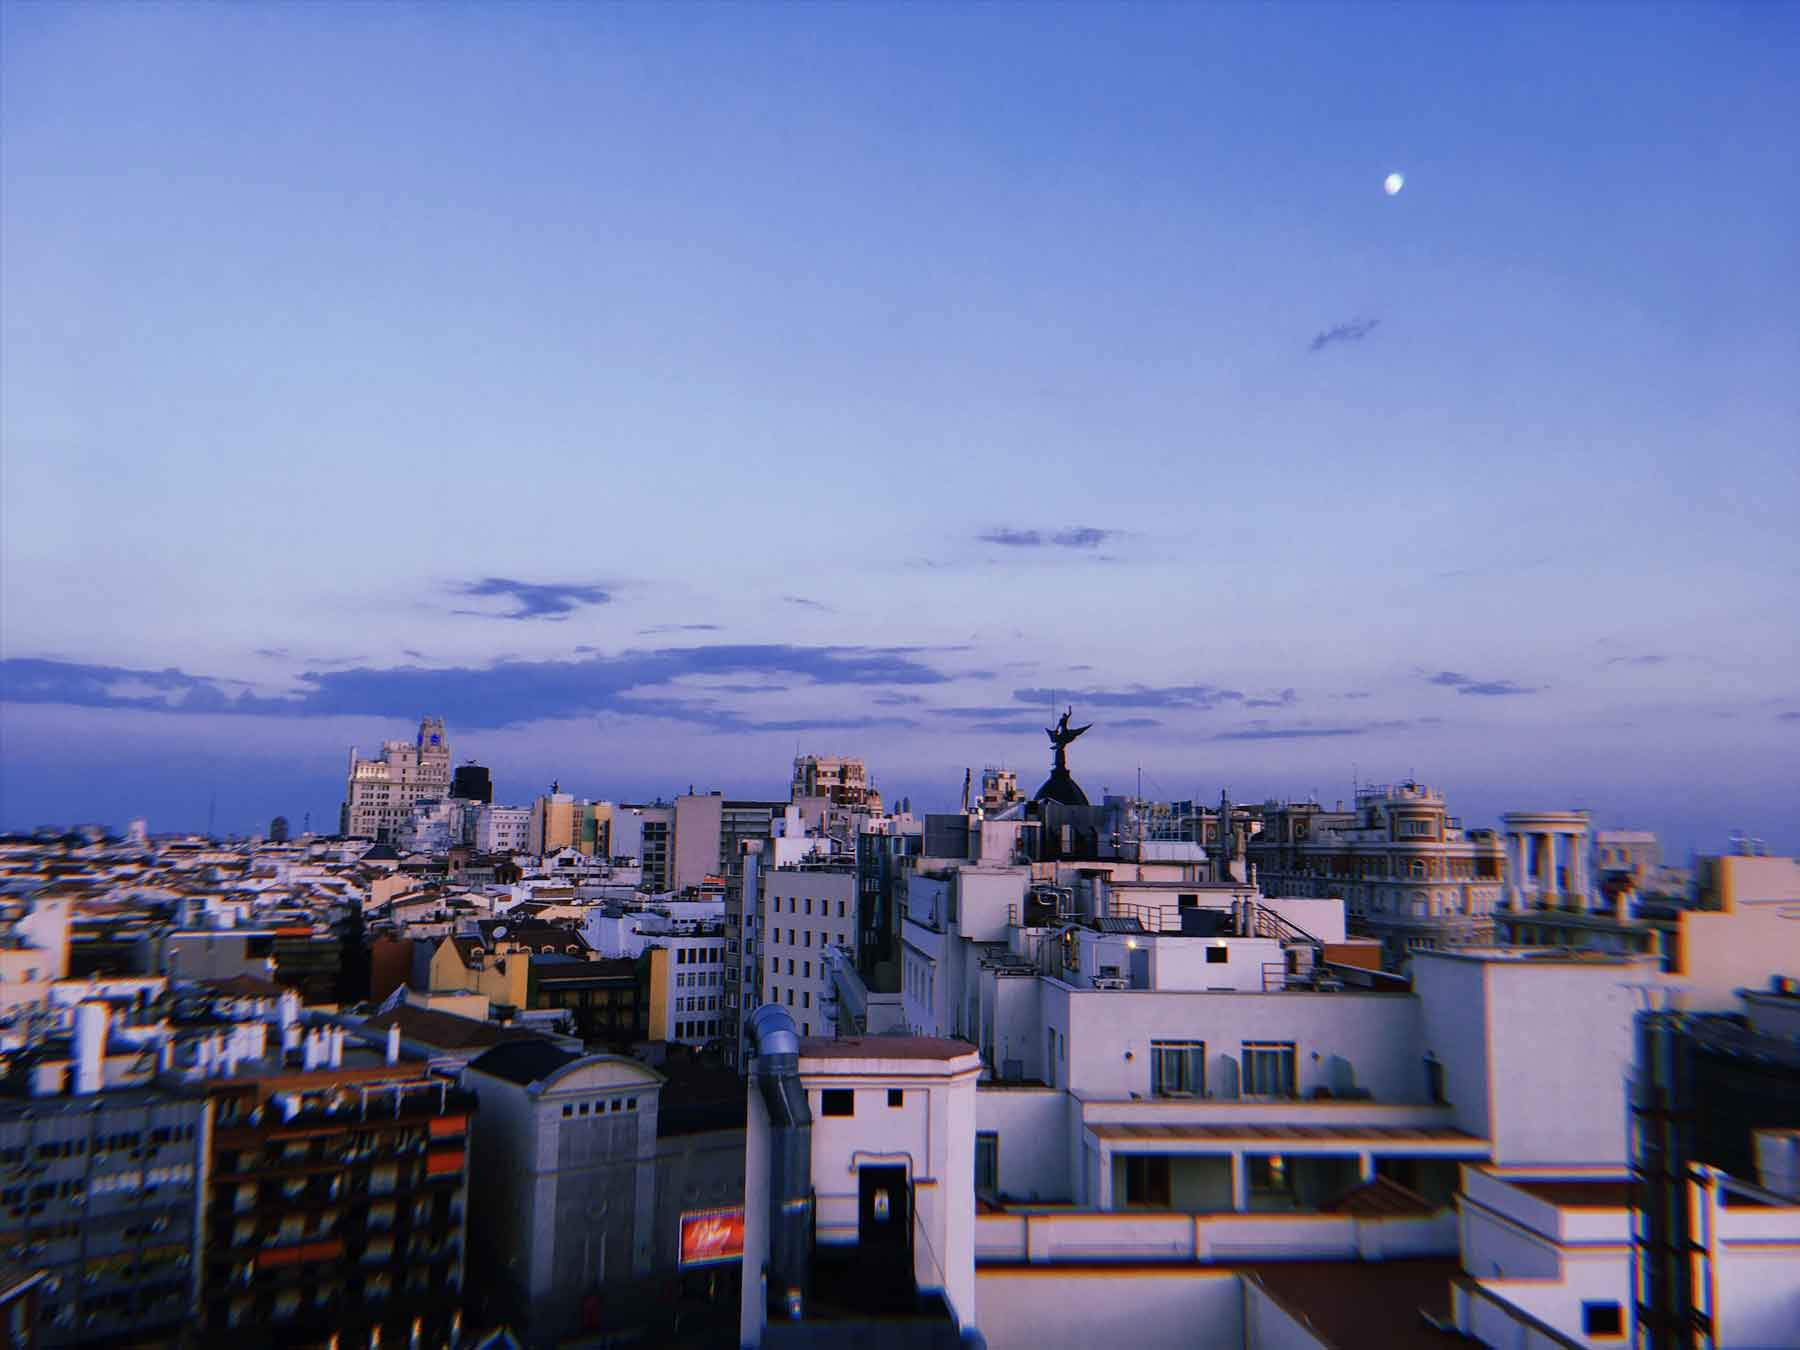 This is part of the view from the terrace | Photo: Superminimaps.